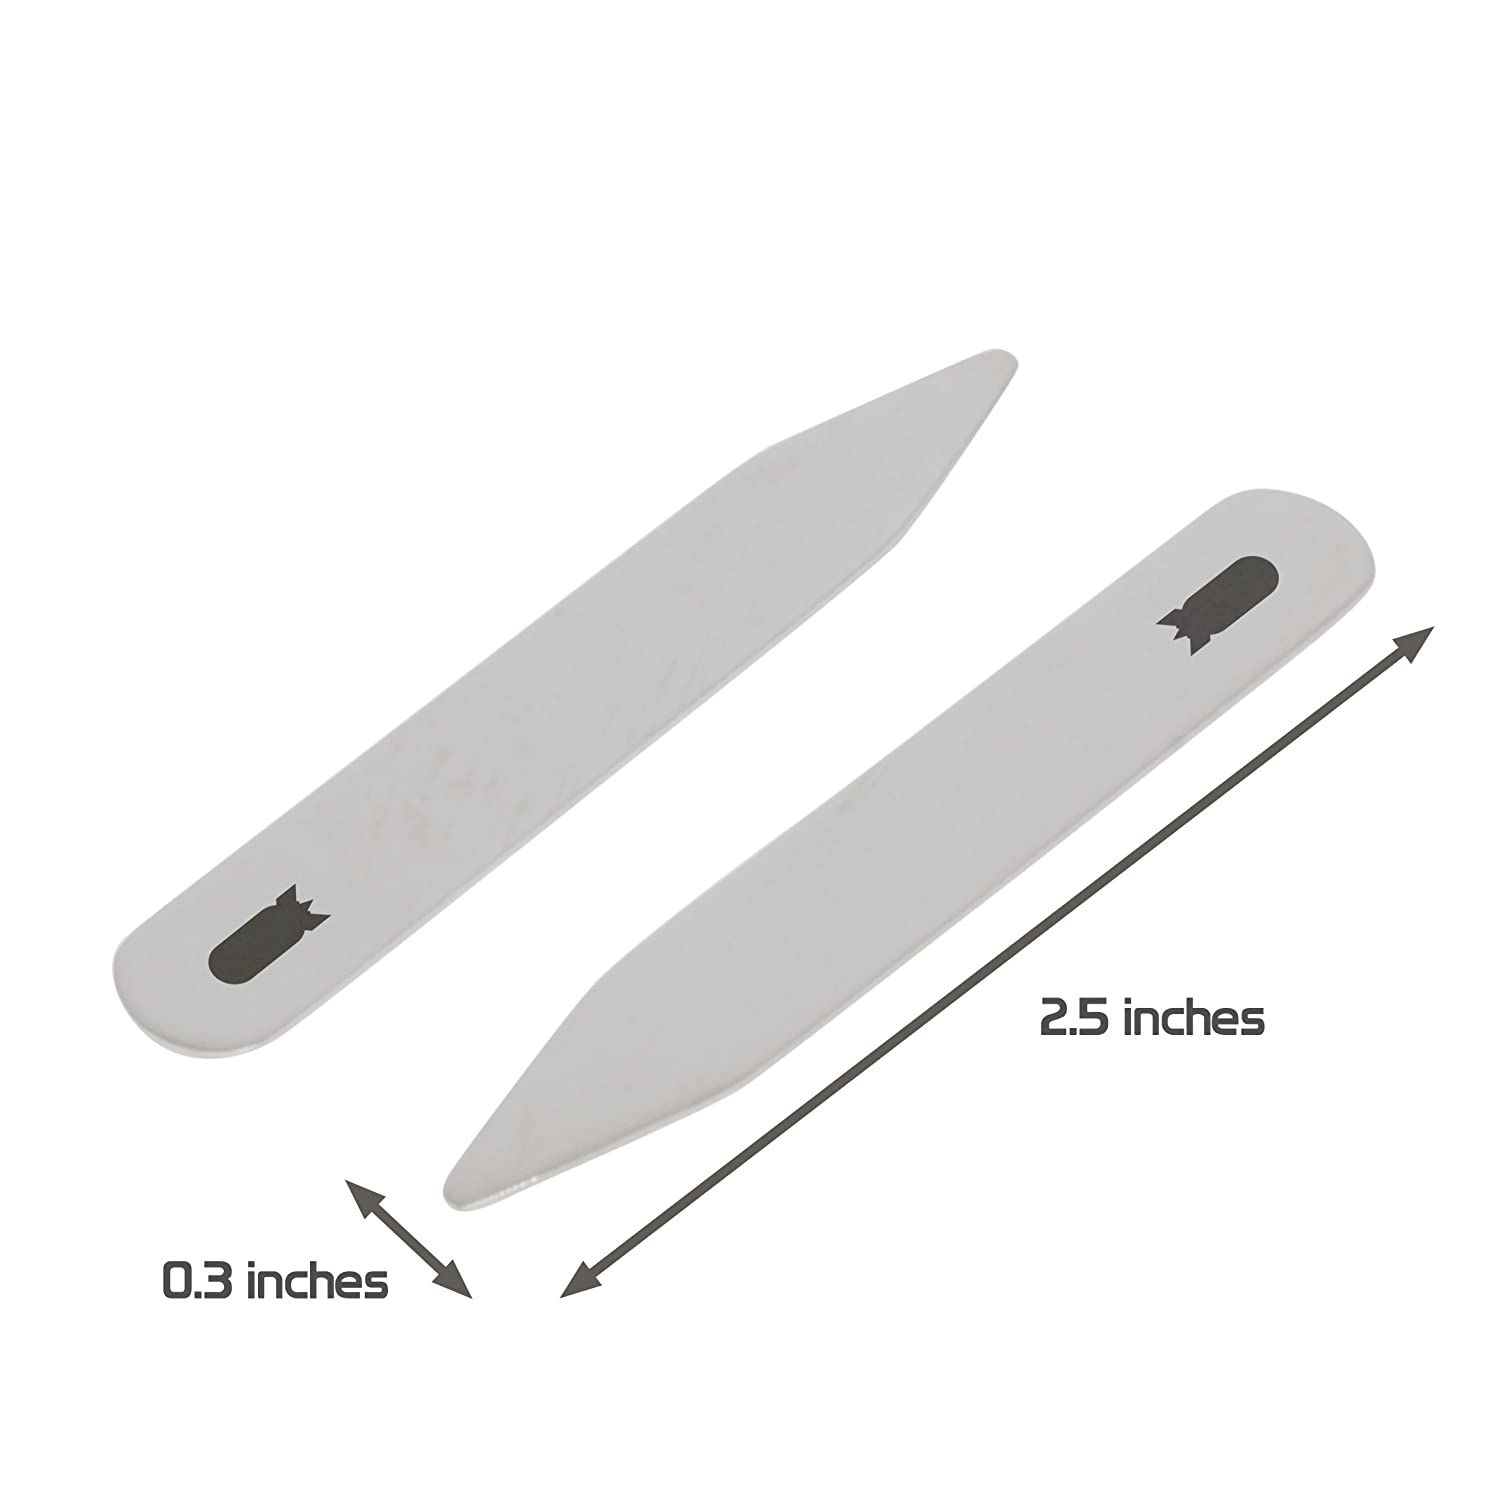 2.5 Inch Metal Collar Stiffeners MODERN GOODS SHOP Stainless Steel Collar Stays With Laser Engraved Bomb Design Made In USA